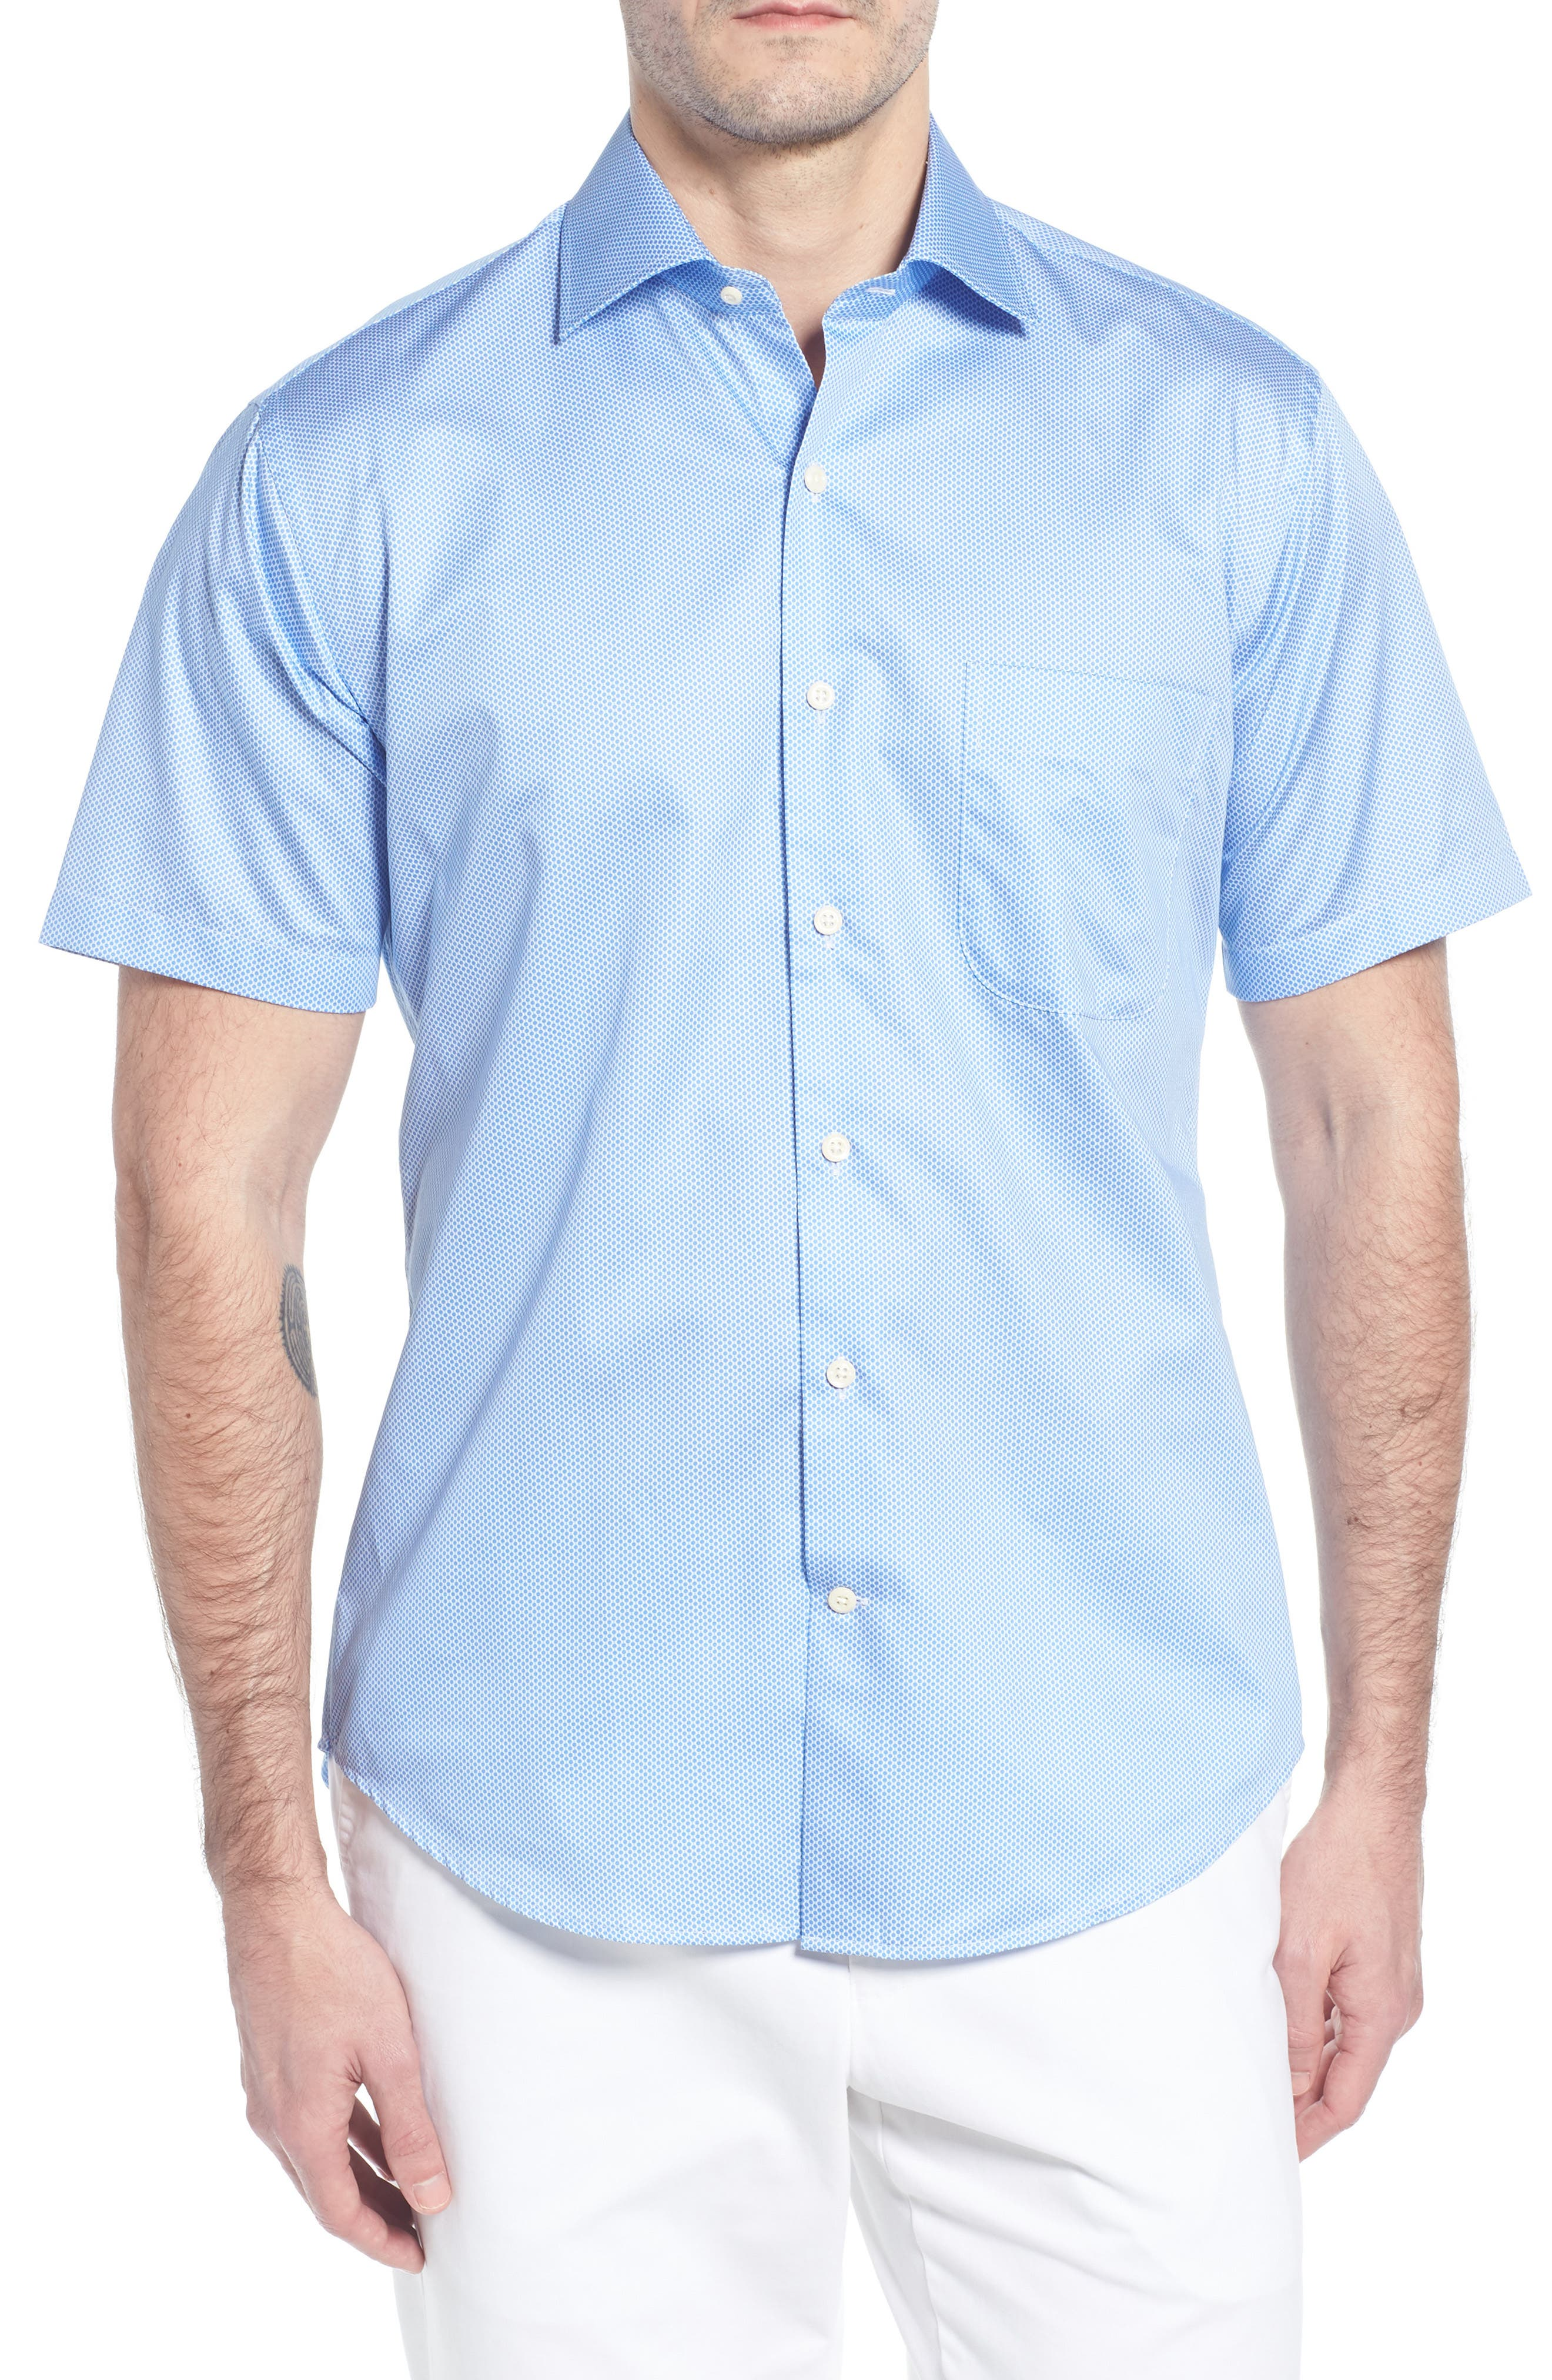 Peter Millar Crown Ease Connecting The Dots Sport Shirt, Blue